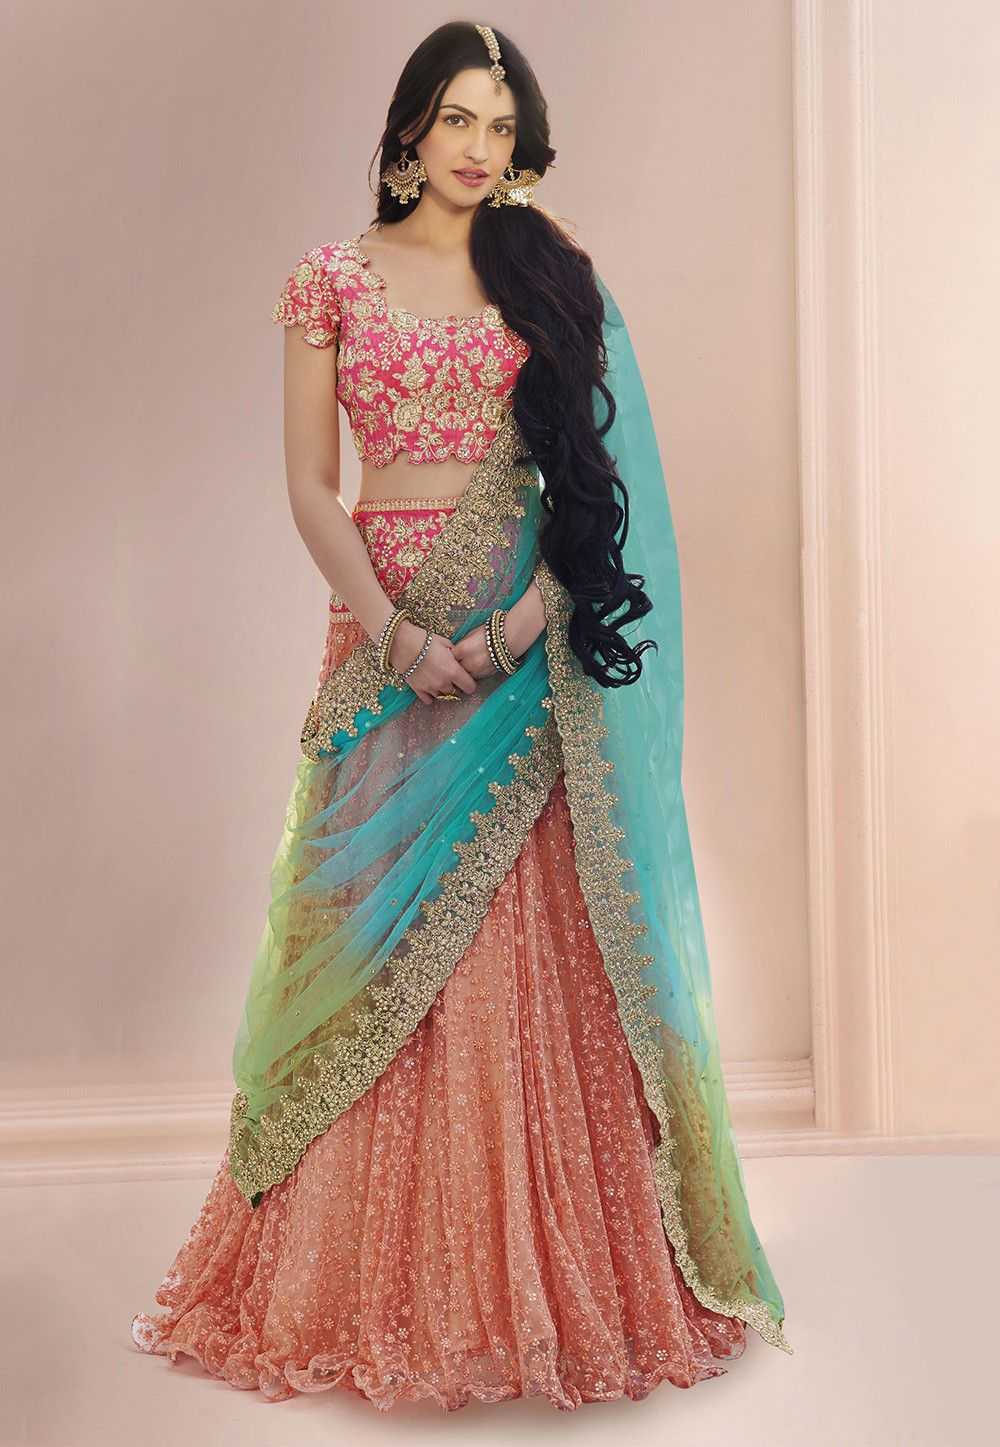 ab3fd07b92 Net Lehenga in Peach Prettified with Zari, Resham, Sequins and Beads Work  Available with a Pink Semi-stitched Art Dupion Silk Choli and a Light Blue  and ...